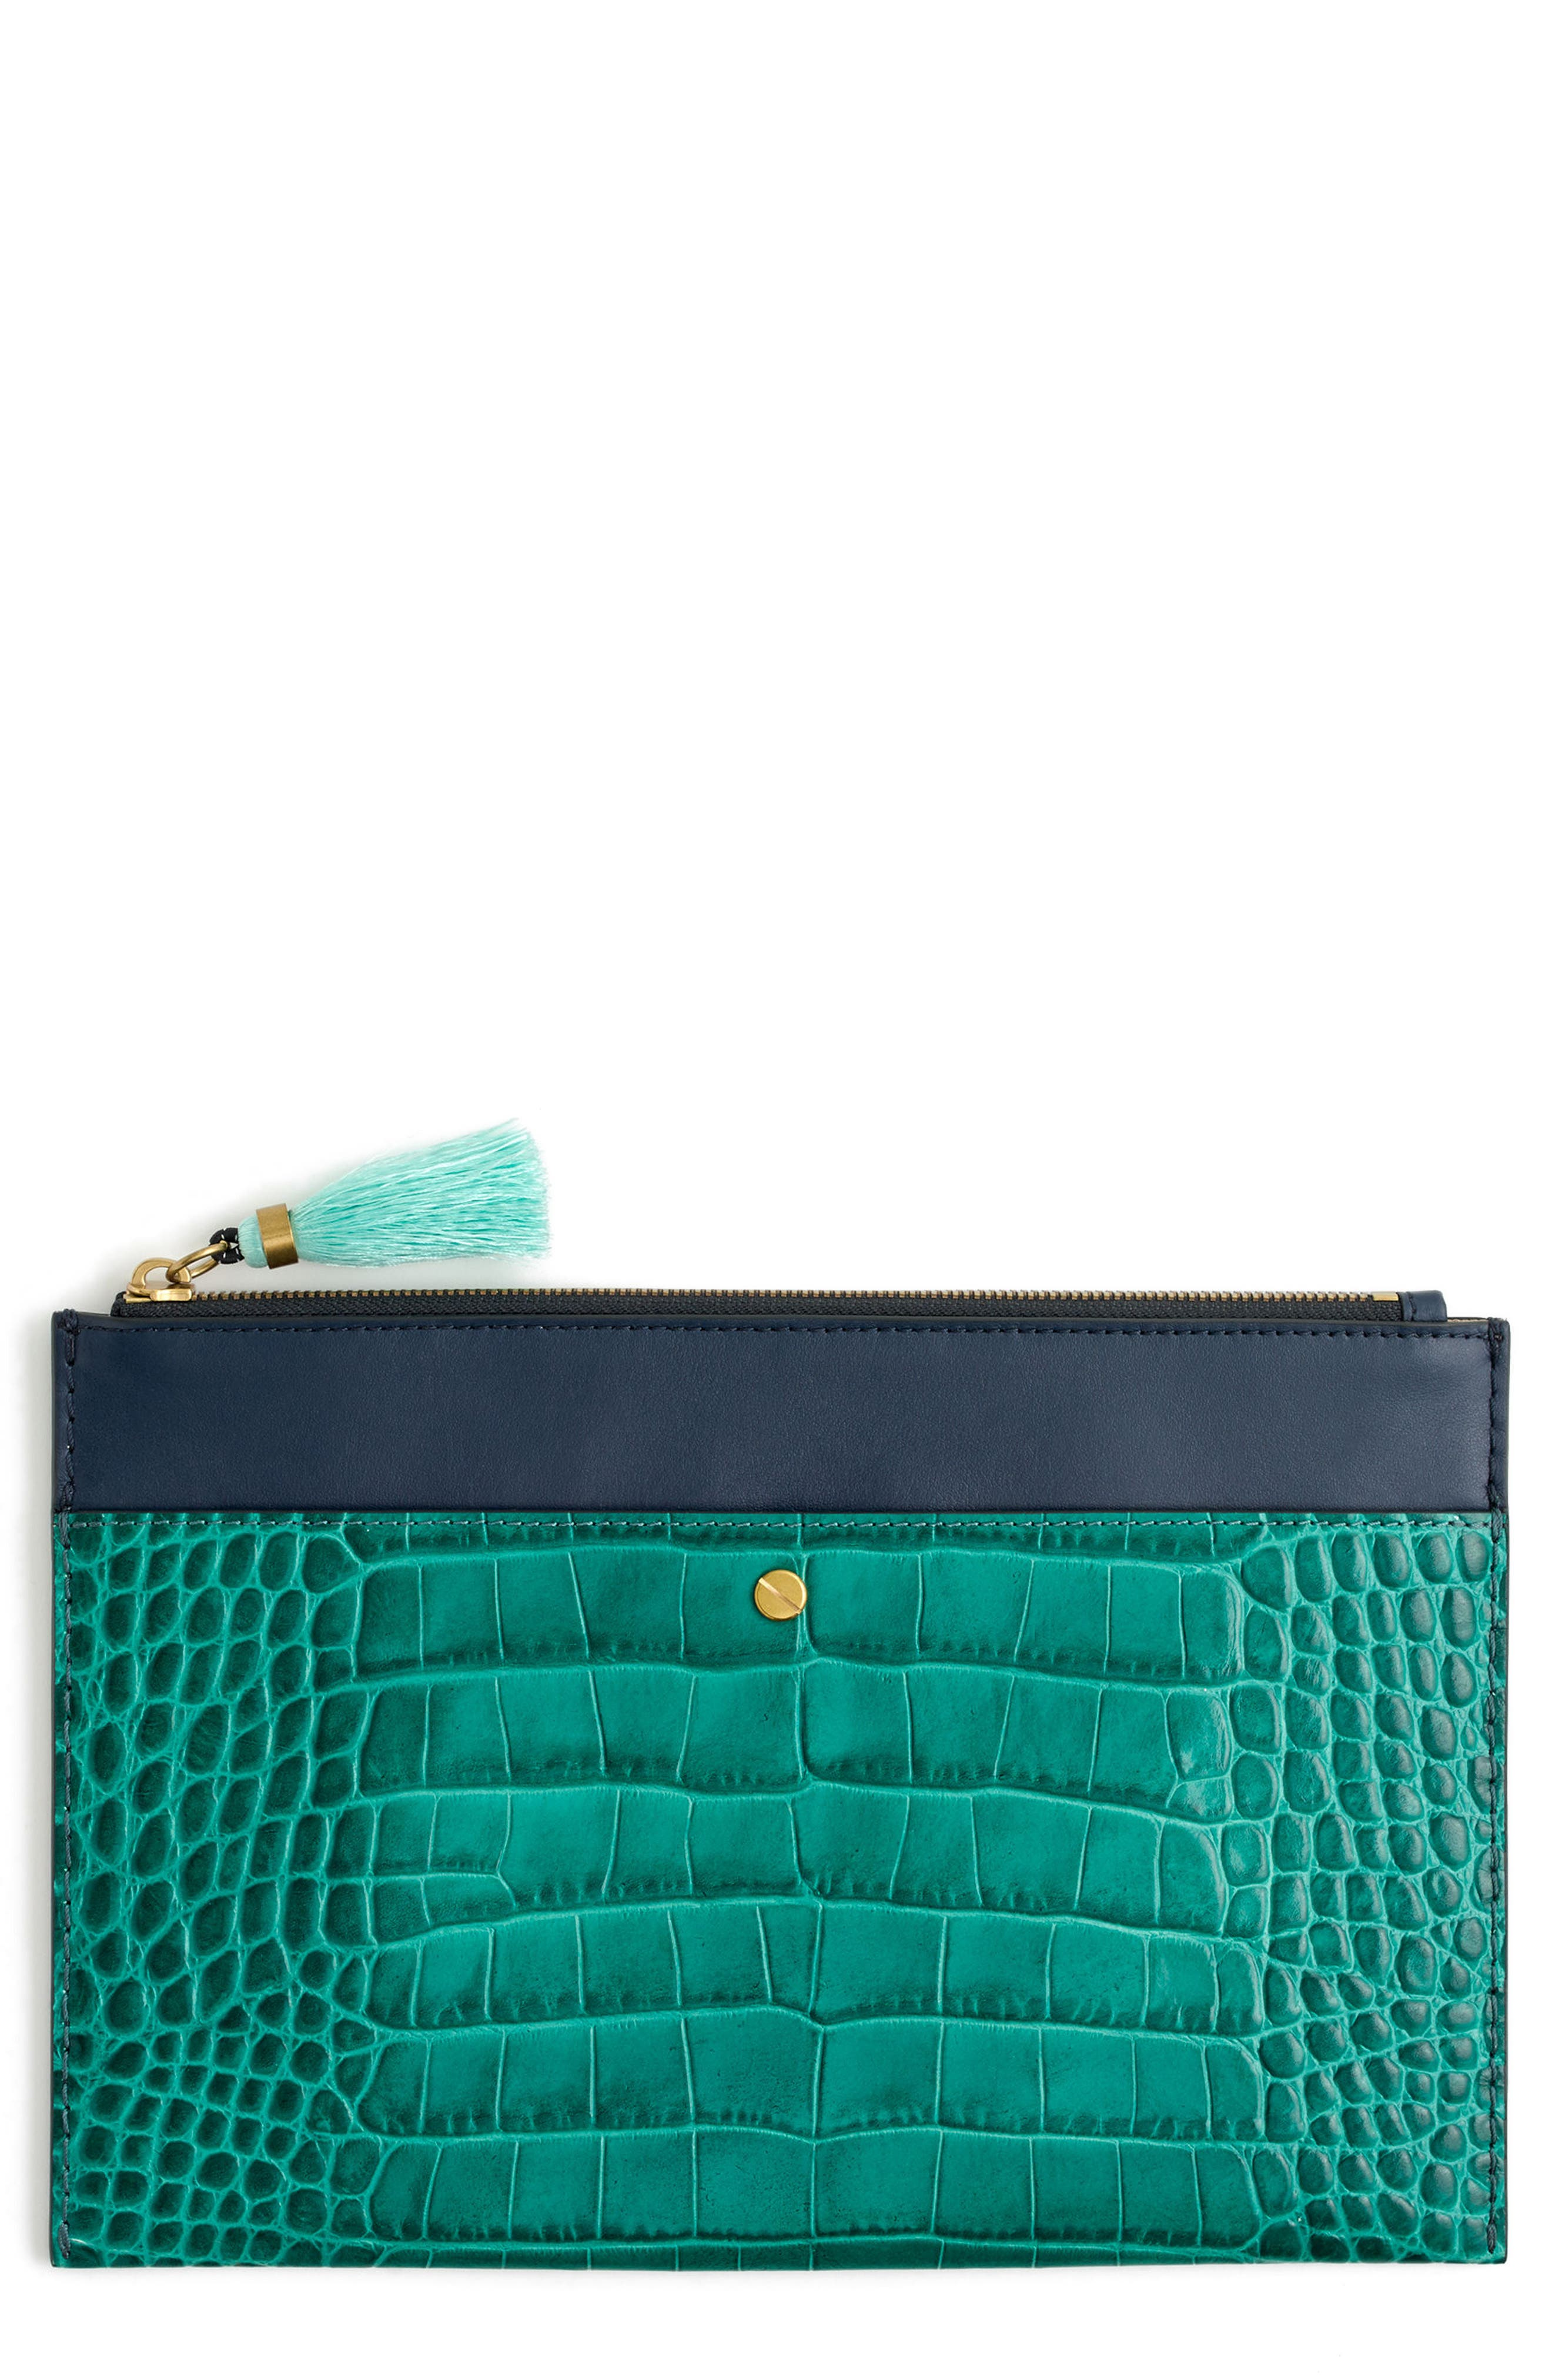 J.Crew Large Stamped Croc Leather Pouch